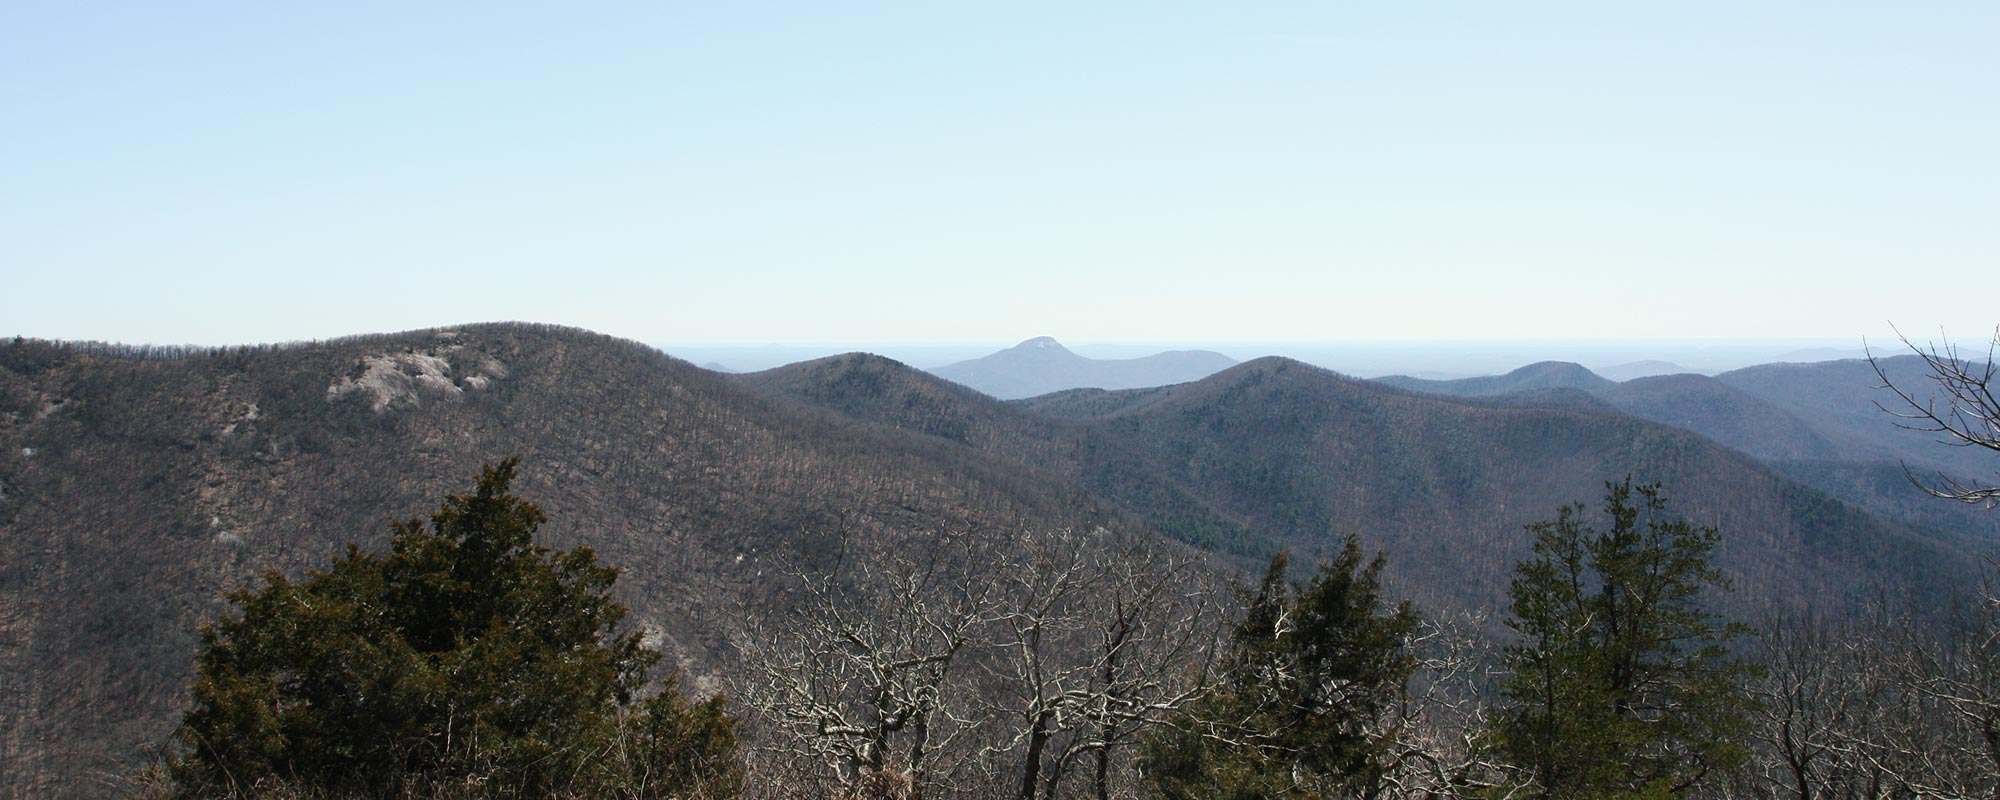 Cowrock Mountain via Tesnatee Gap